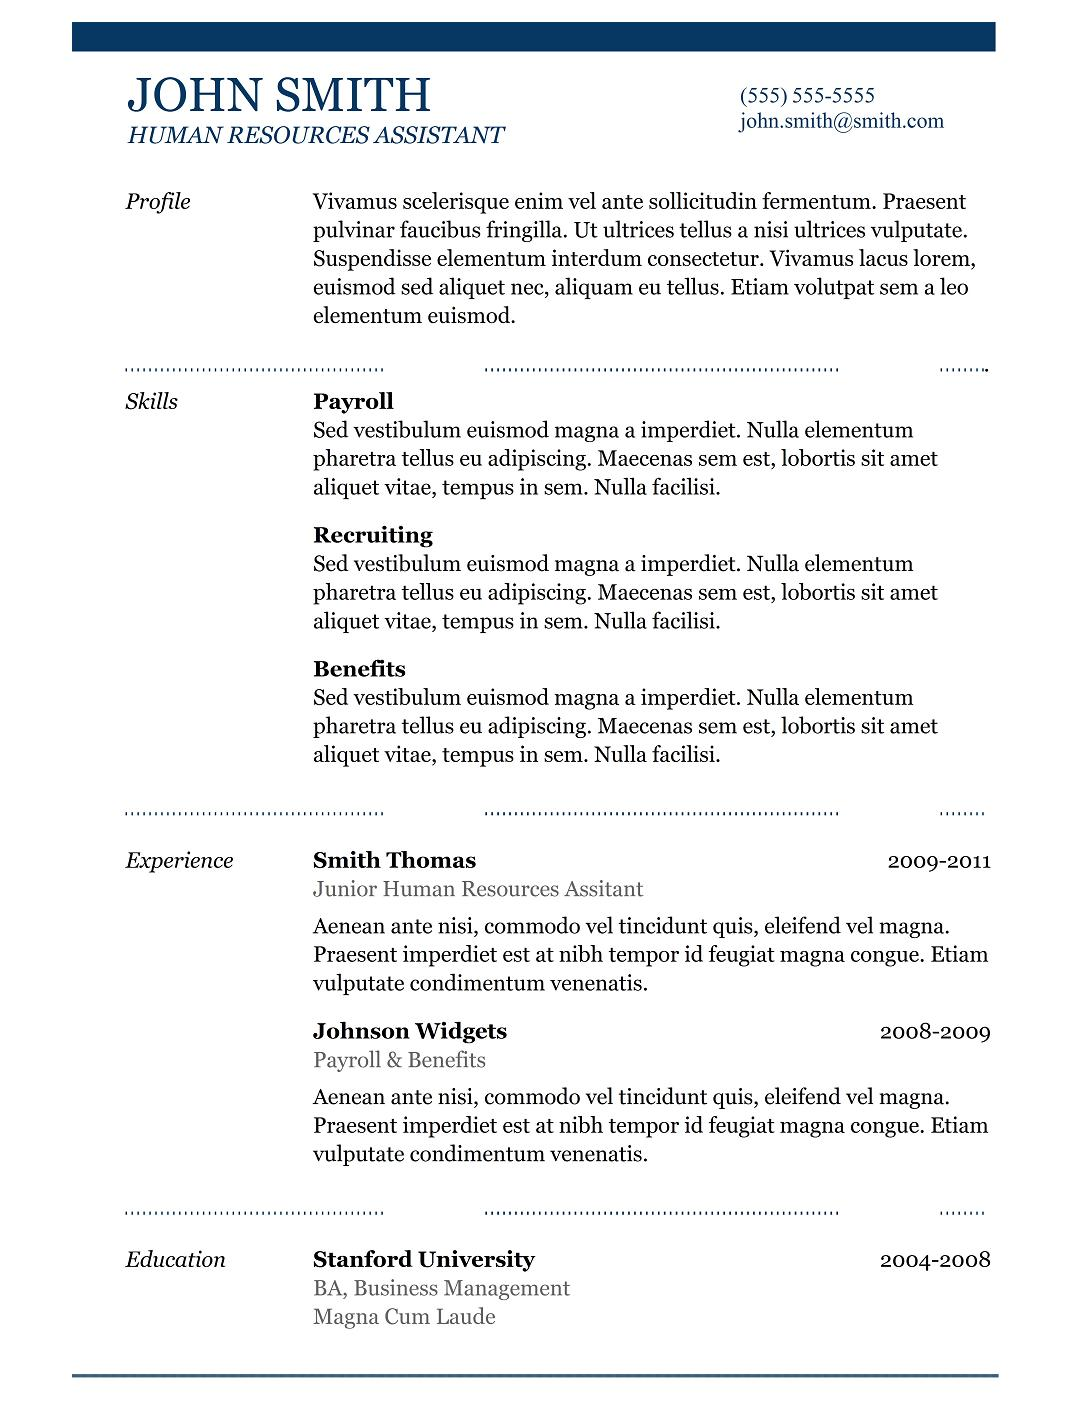 Free Resume Templates Download Microsoft Word Resumes 9 Best Free Resume Templates Download For Freshers Best